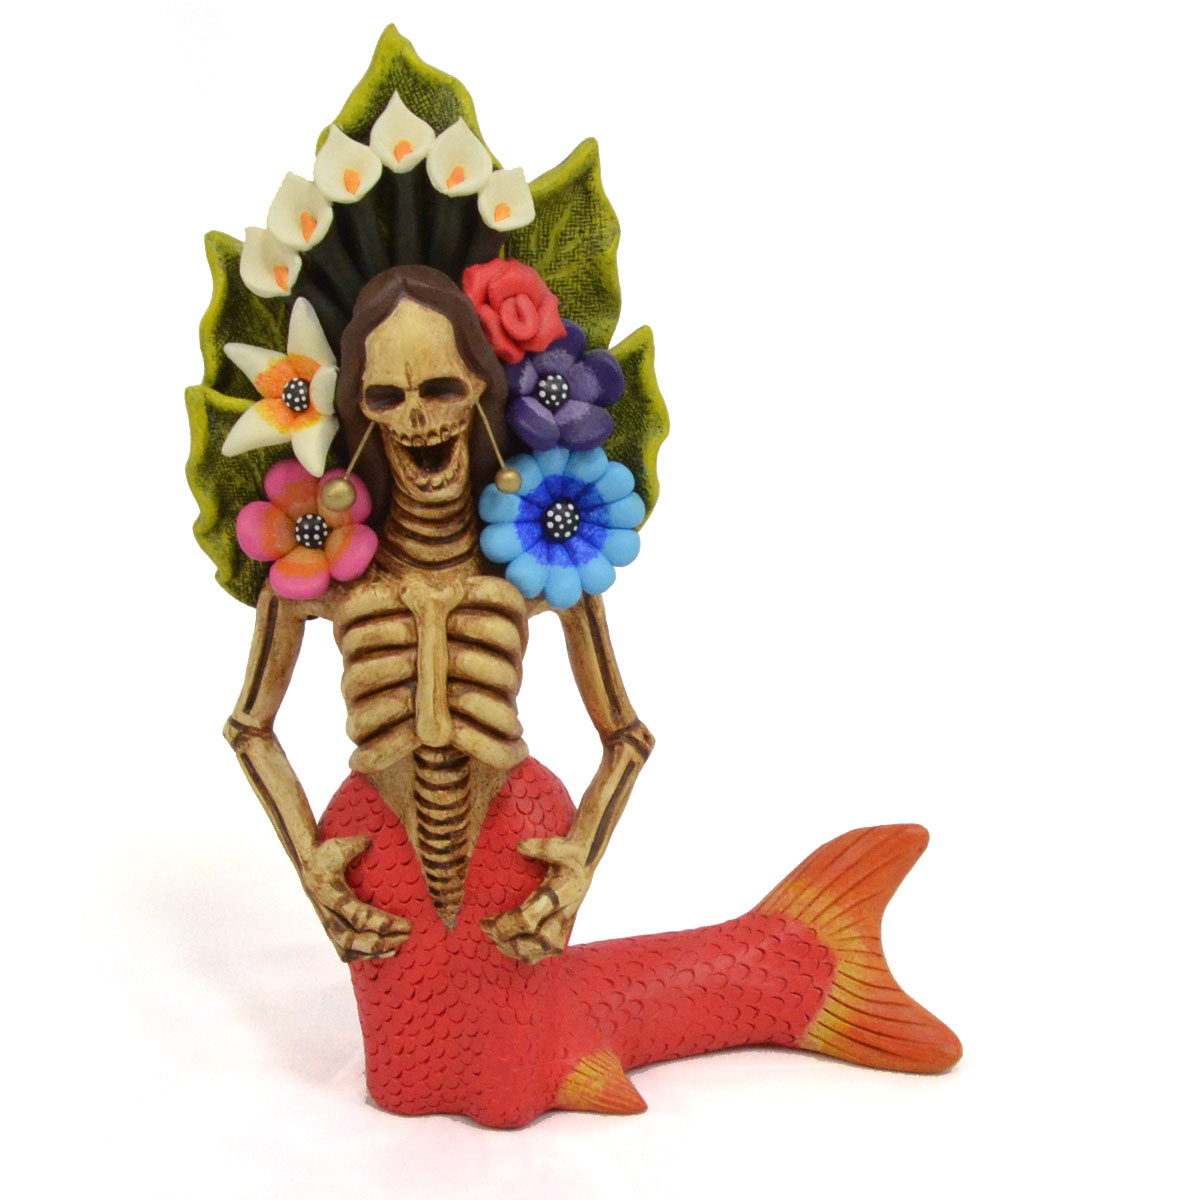 Aguilar Family Pottery: Guillermina Aguilar - Day of the Dead Mermaid holding flowers